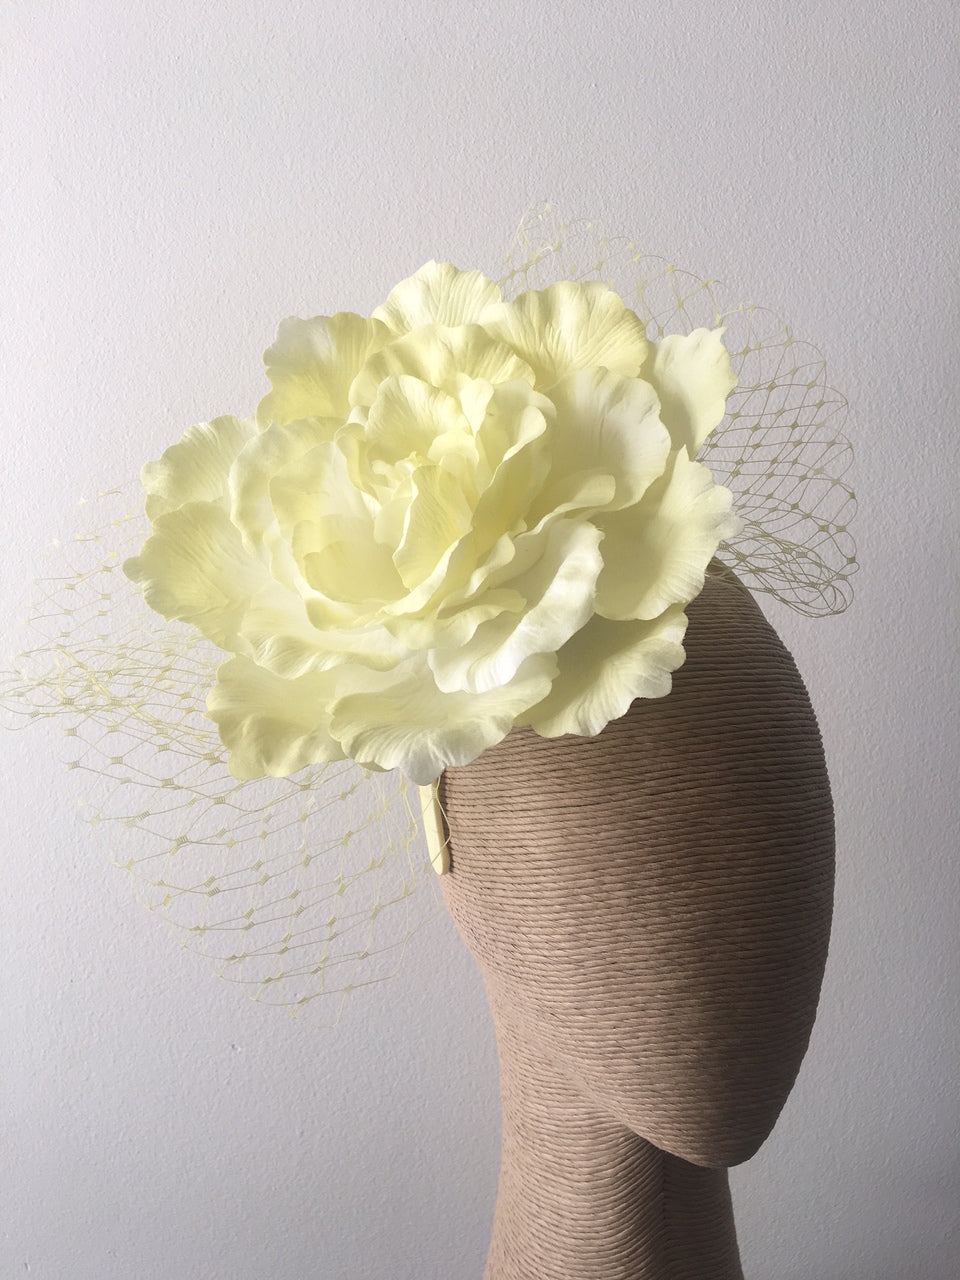 Max Alexander Large Flower with Netting in Lemon